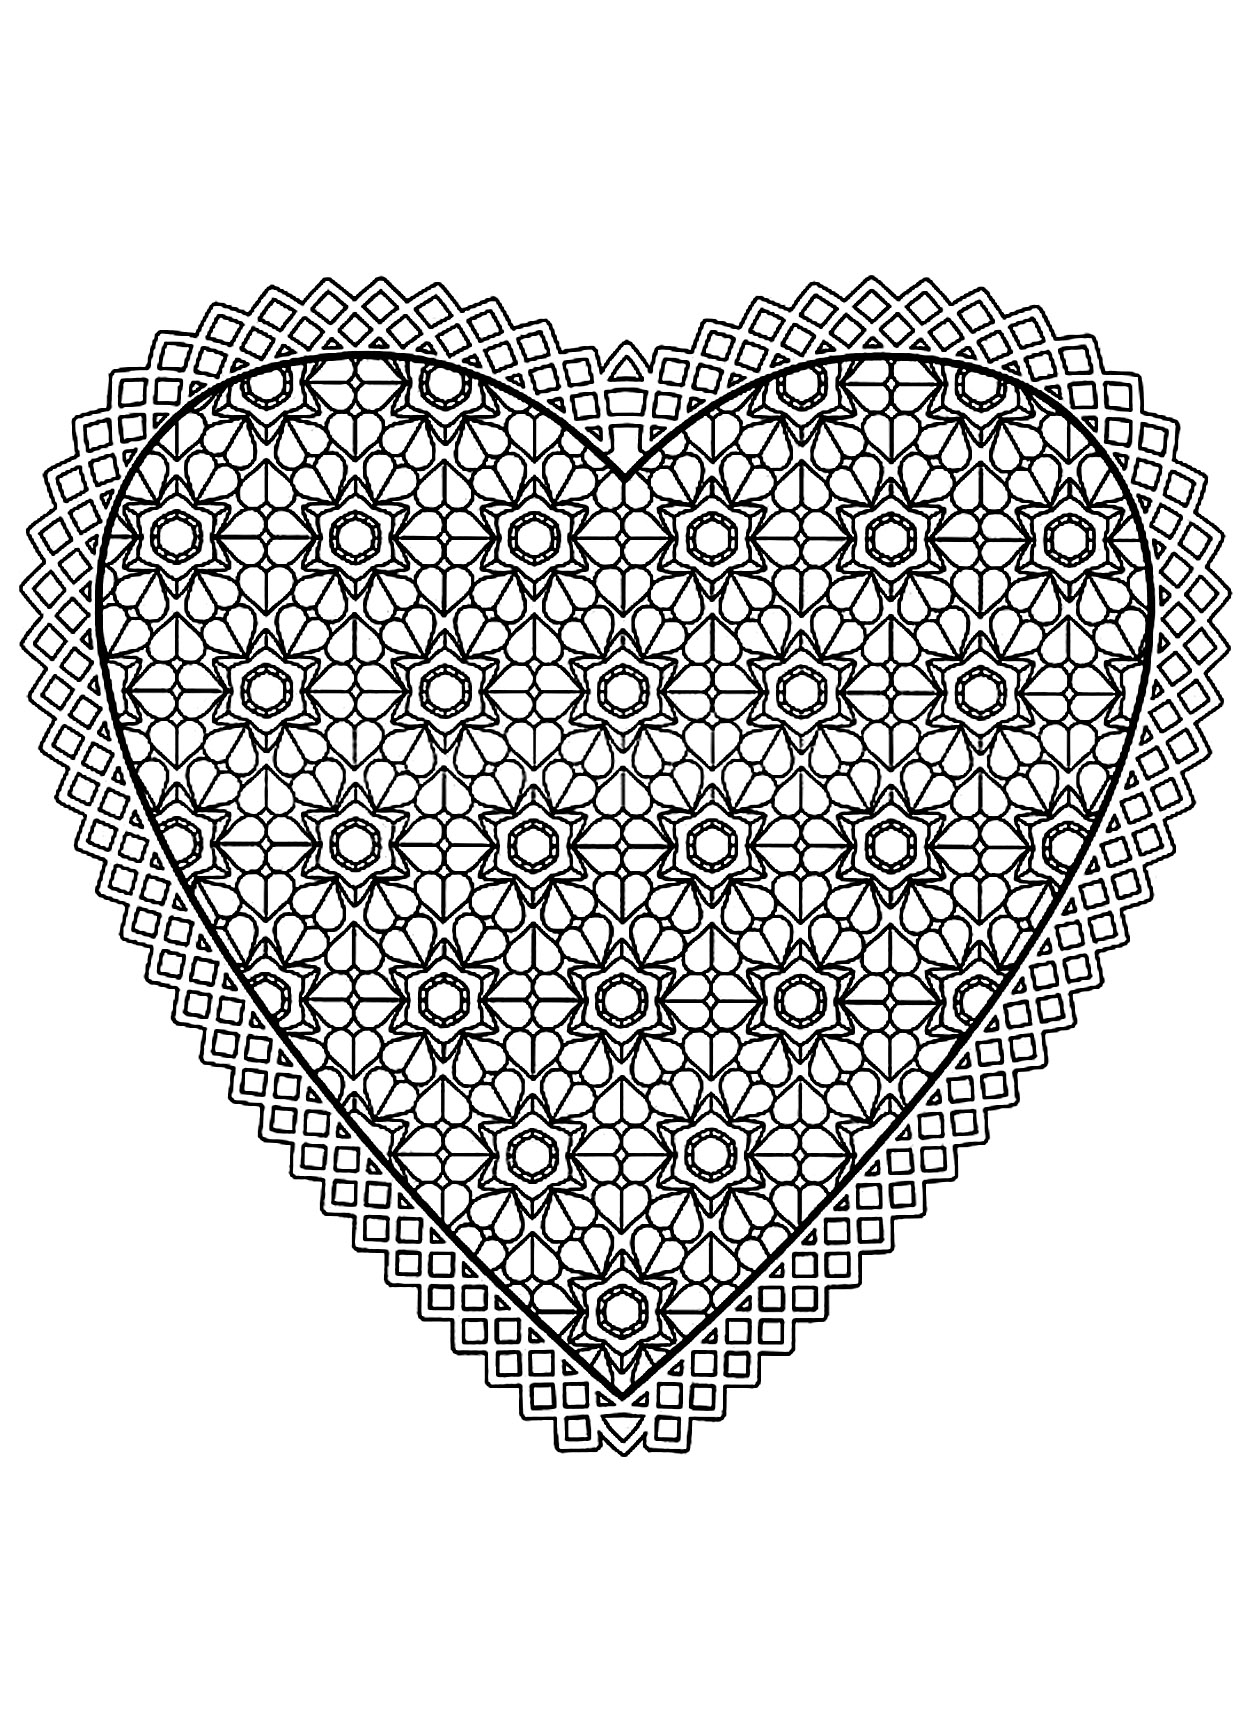 Mandala with the shape of an heart